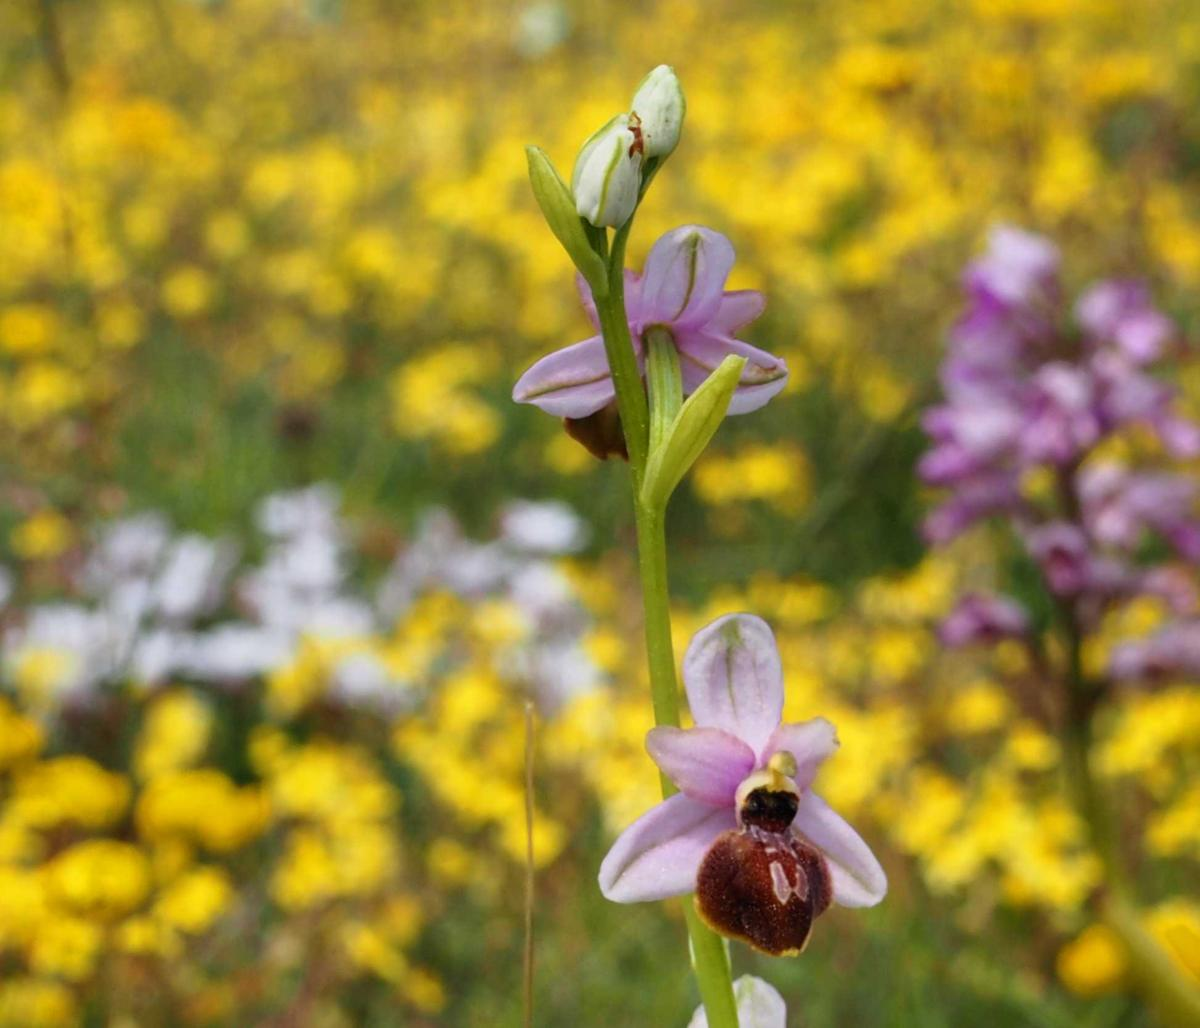 Ophrys of Aveyron flower